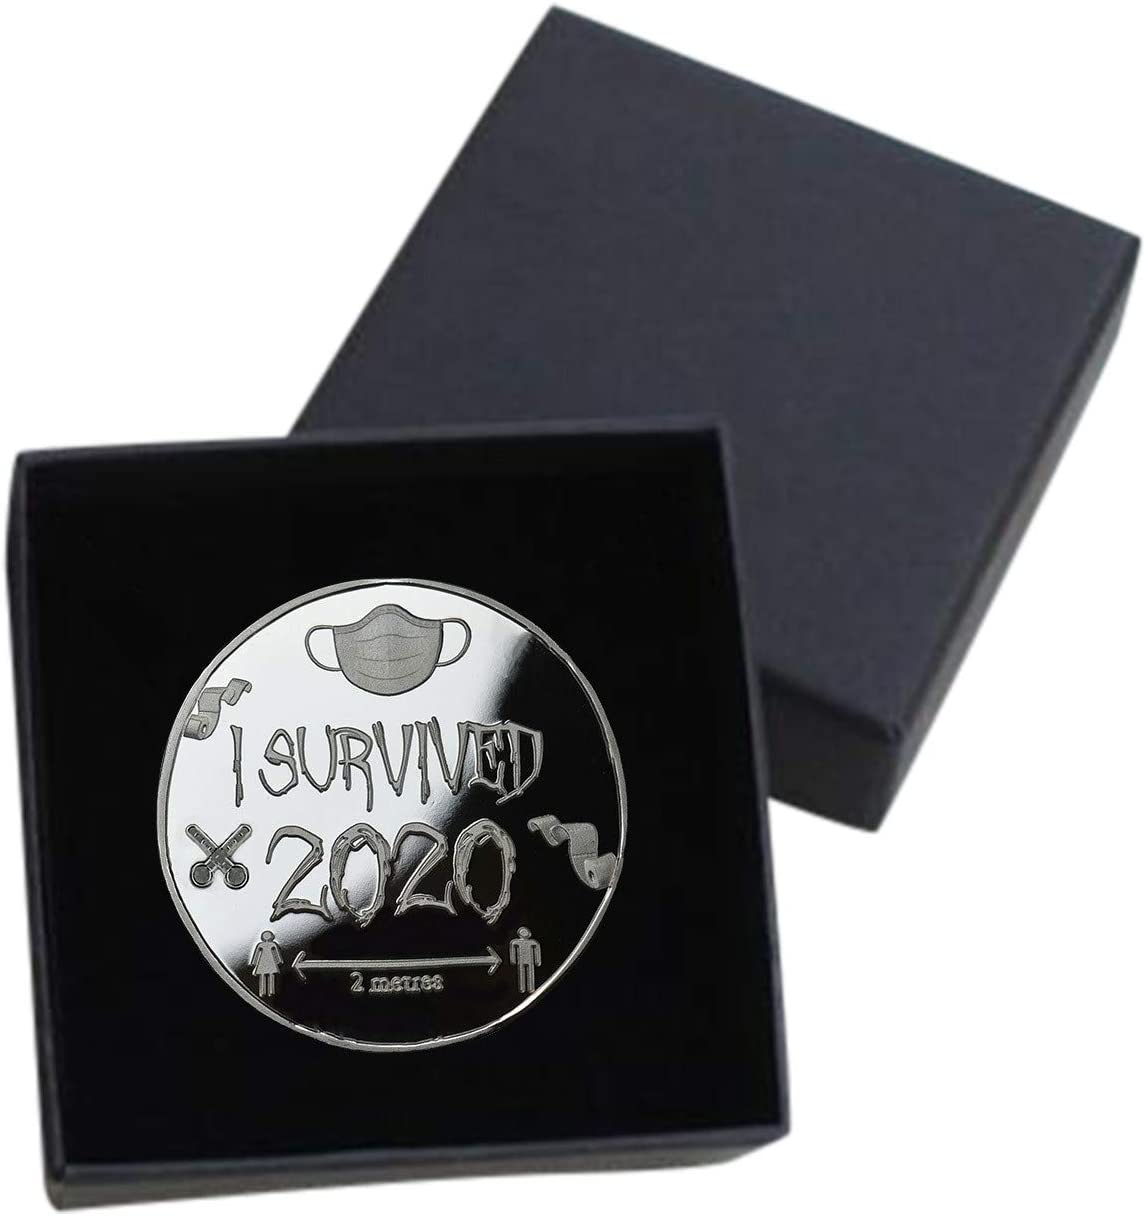 UpdateClassic I Survived 2020 Commemorative Coin Coins for Collectors to Memorialize This Weird Year 2020 Commemorative Coins A, 1PC